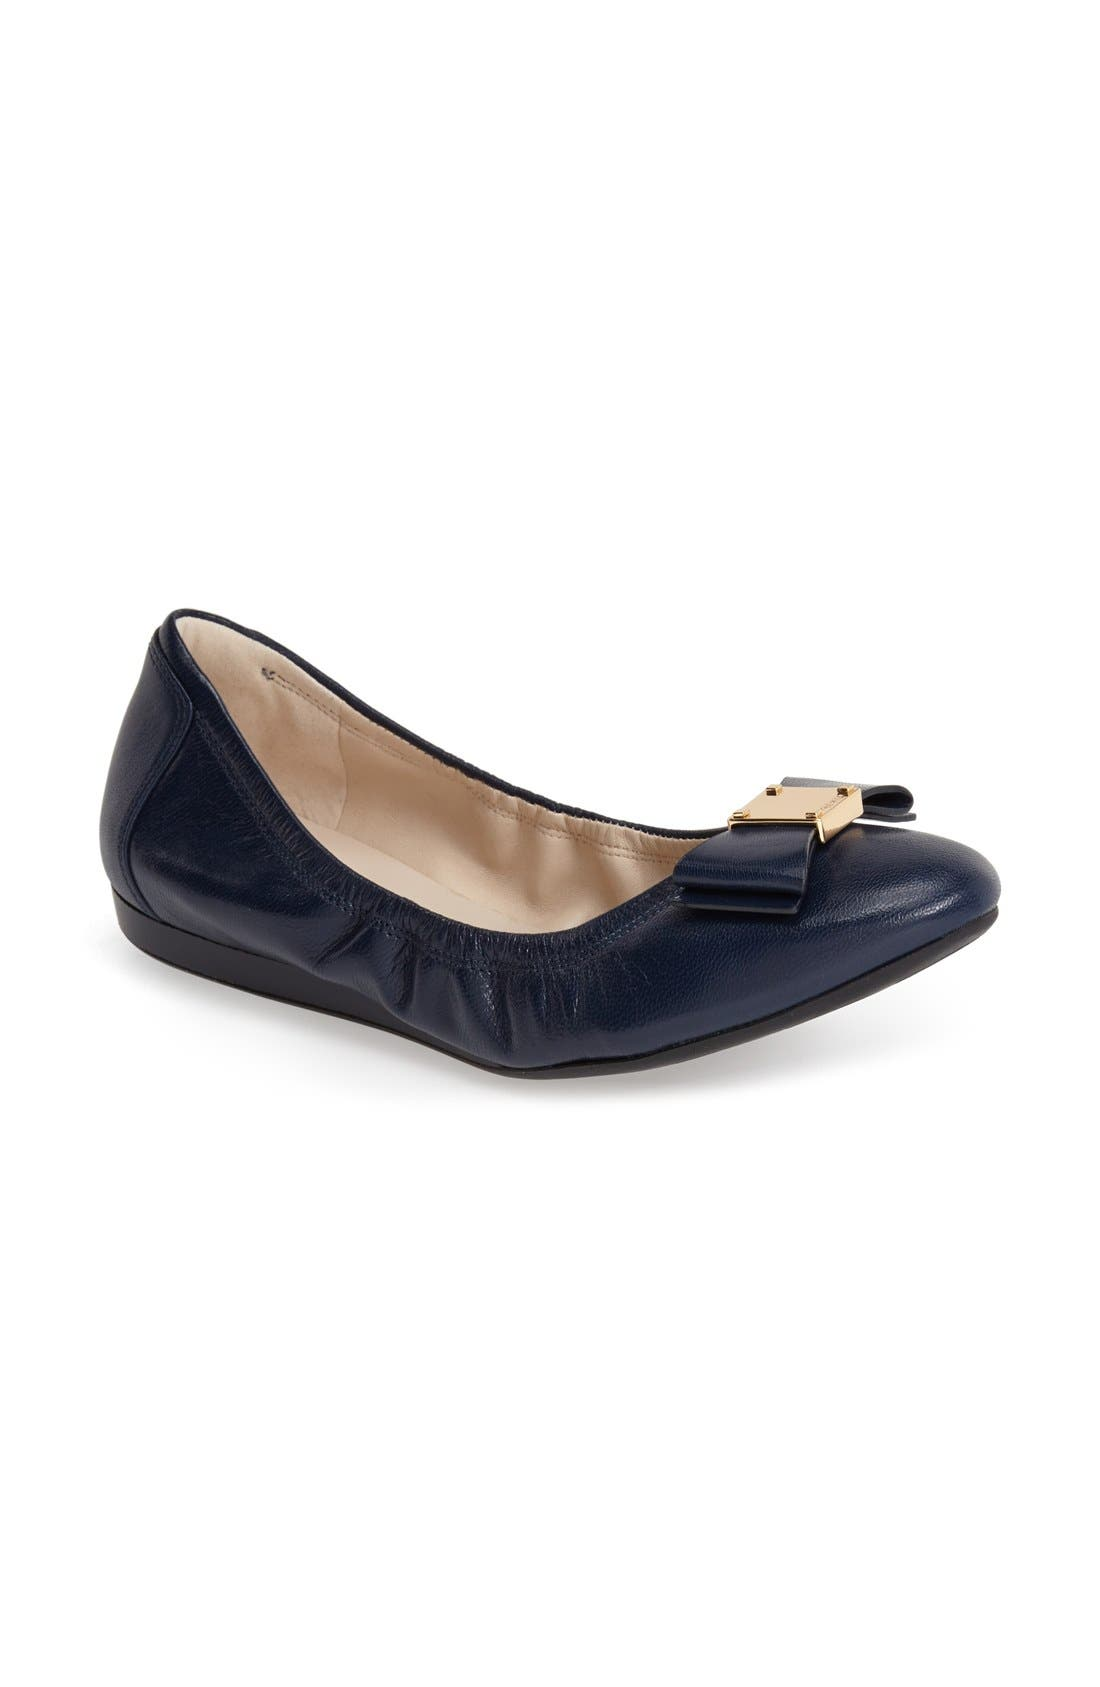 'Tali' Leather Ballet Flat,                             Main thumbnail 1, color,                             Blazer Blue